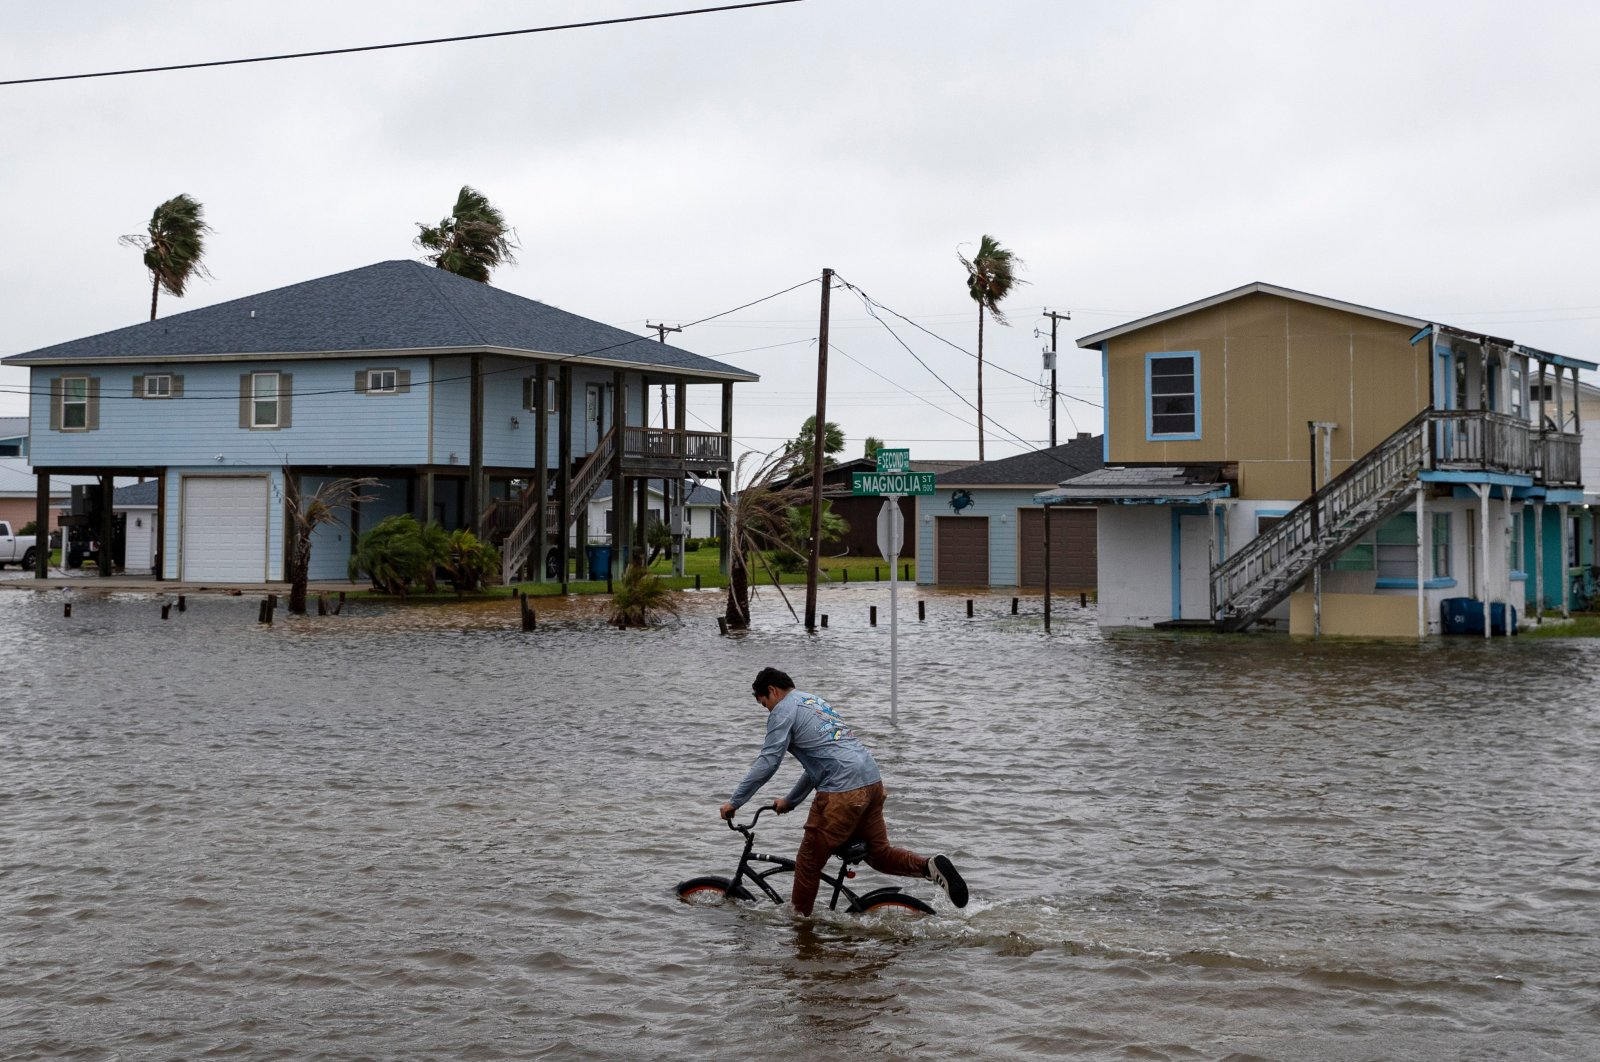 A boy rides his bike down a flooded South Magnolia Street in Rockport, Texas, U.S., as Tropical Storm Beta approaches, Sept. 21, 2020. (Reuters Photo)